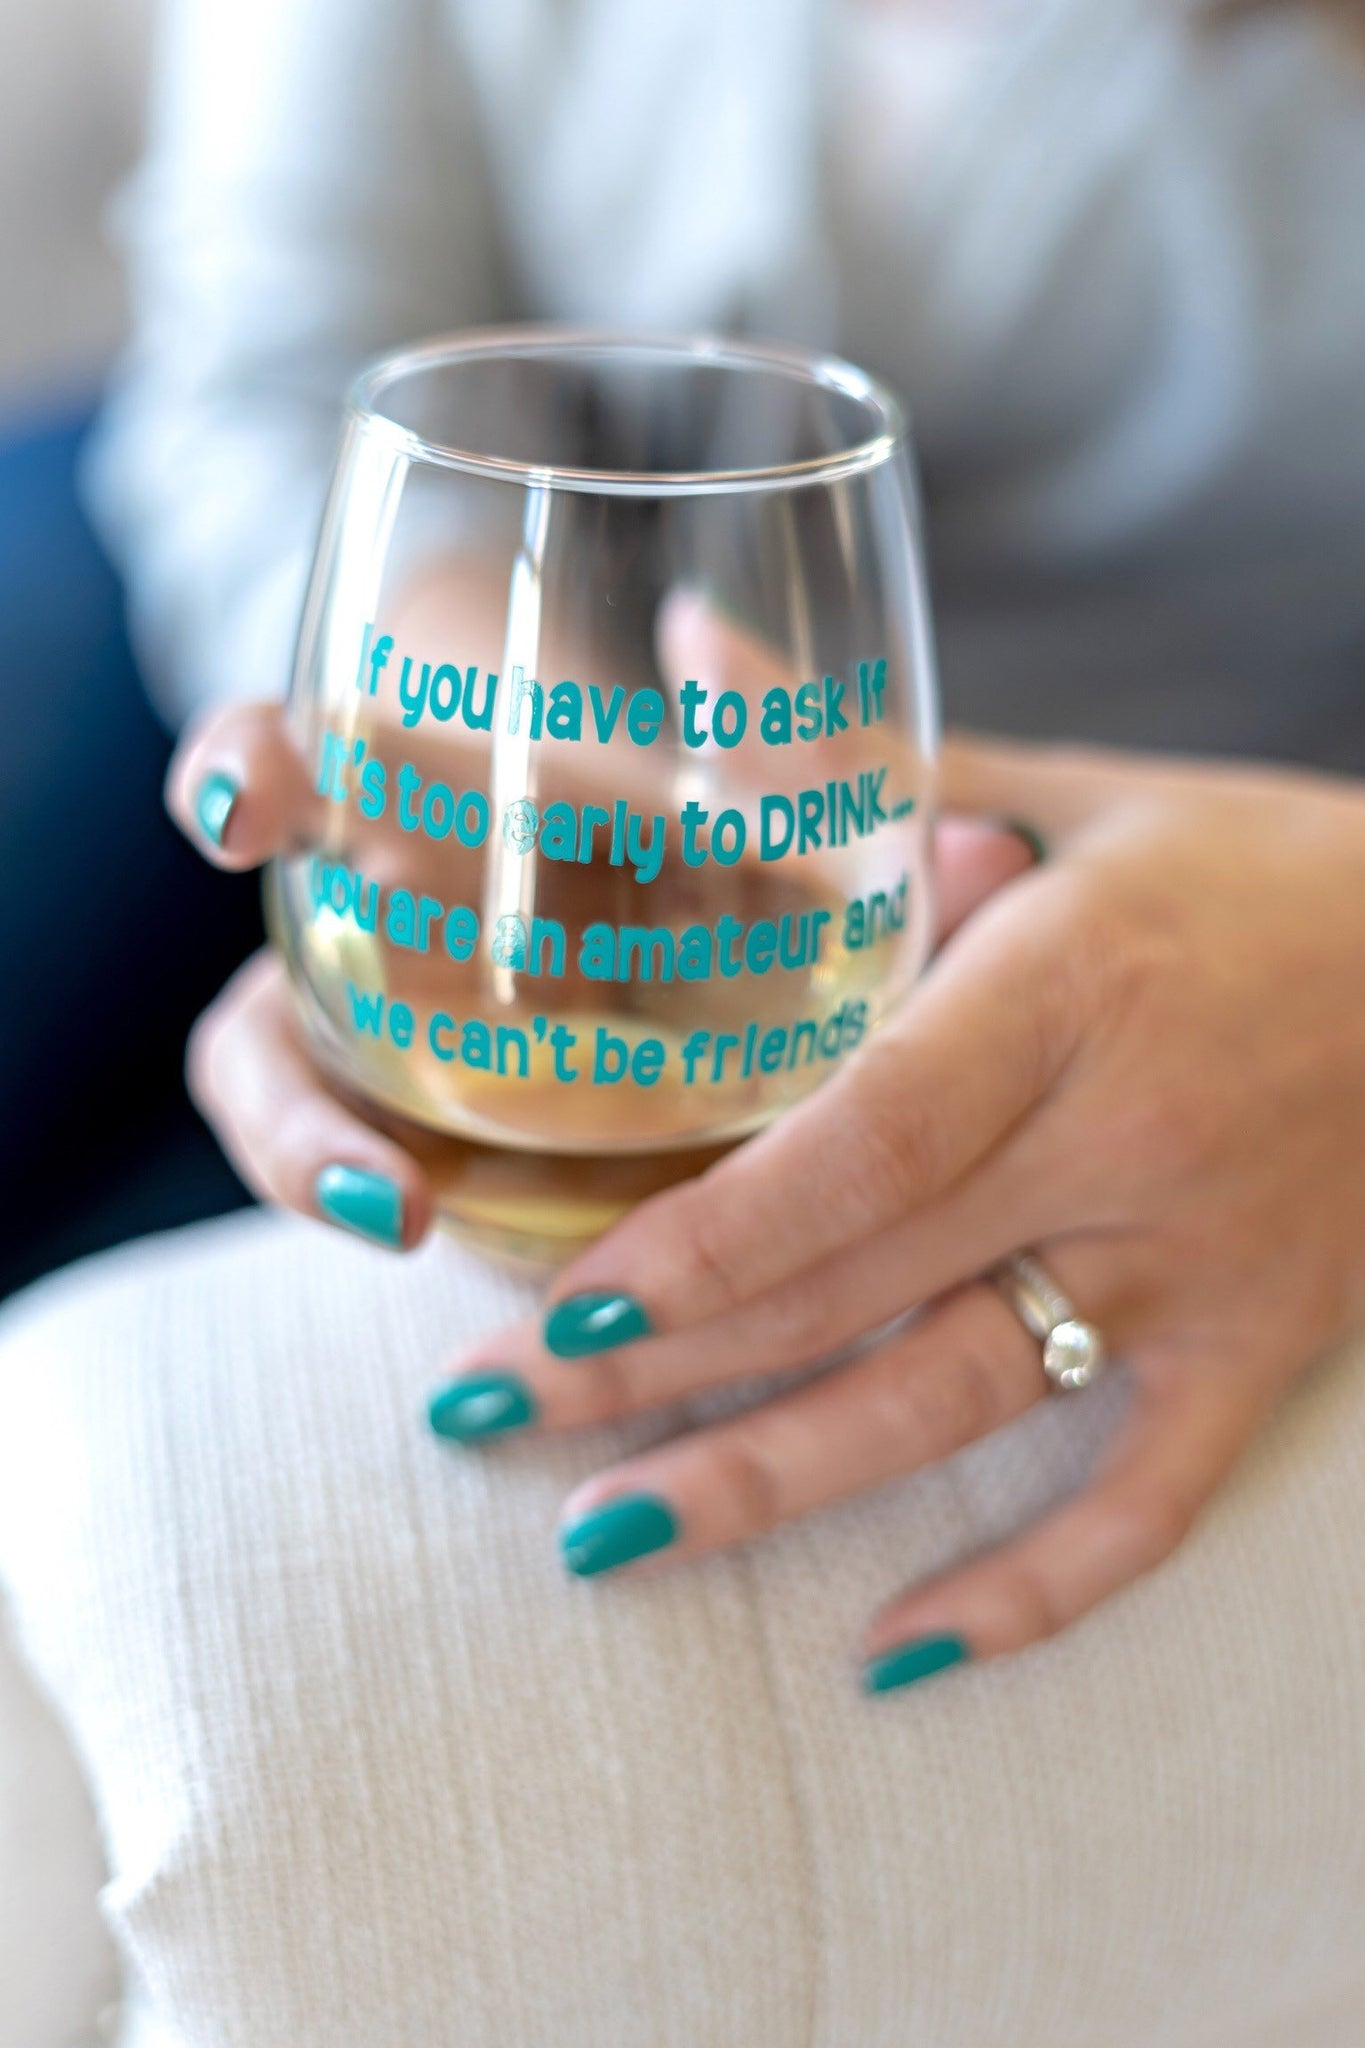 Too early for a drink glass, Amateur drinker glass, Funny gift for friends, funny wine glass for friends, best friends wine glass, bestie